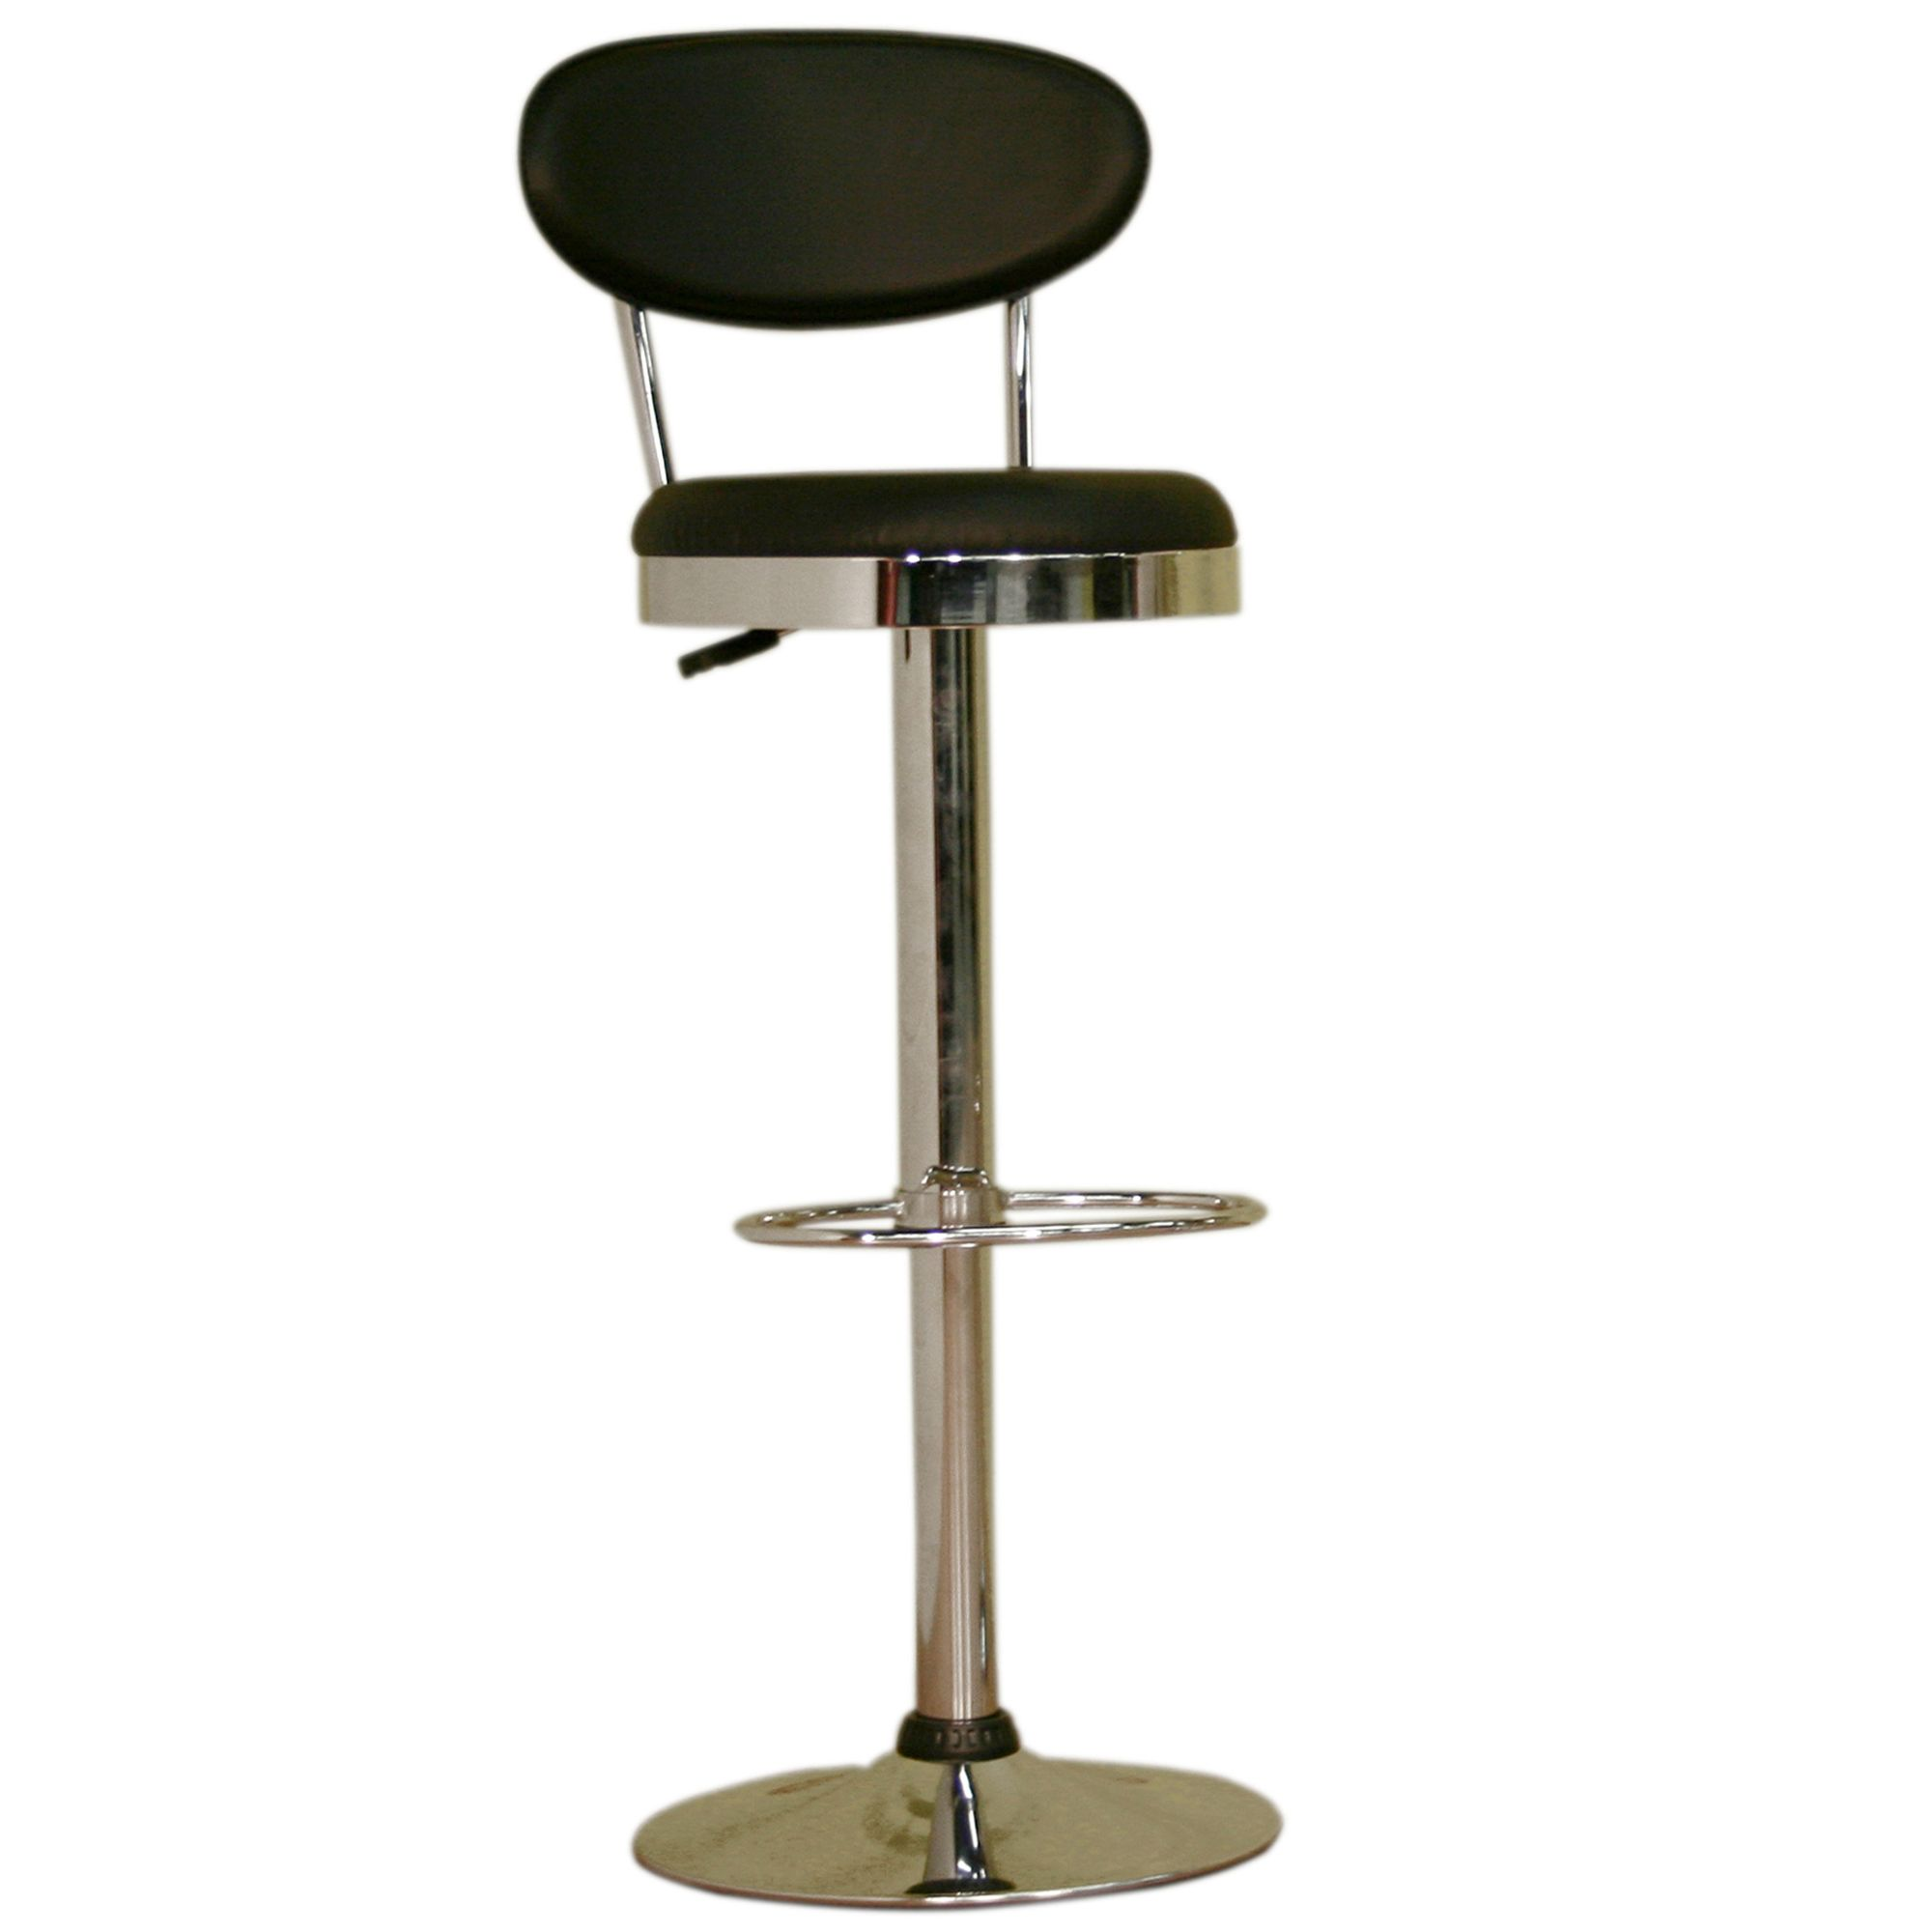 Adjustable Vinyl and Chromed Steel Bar Stool